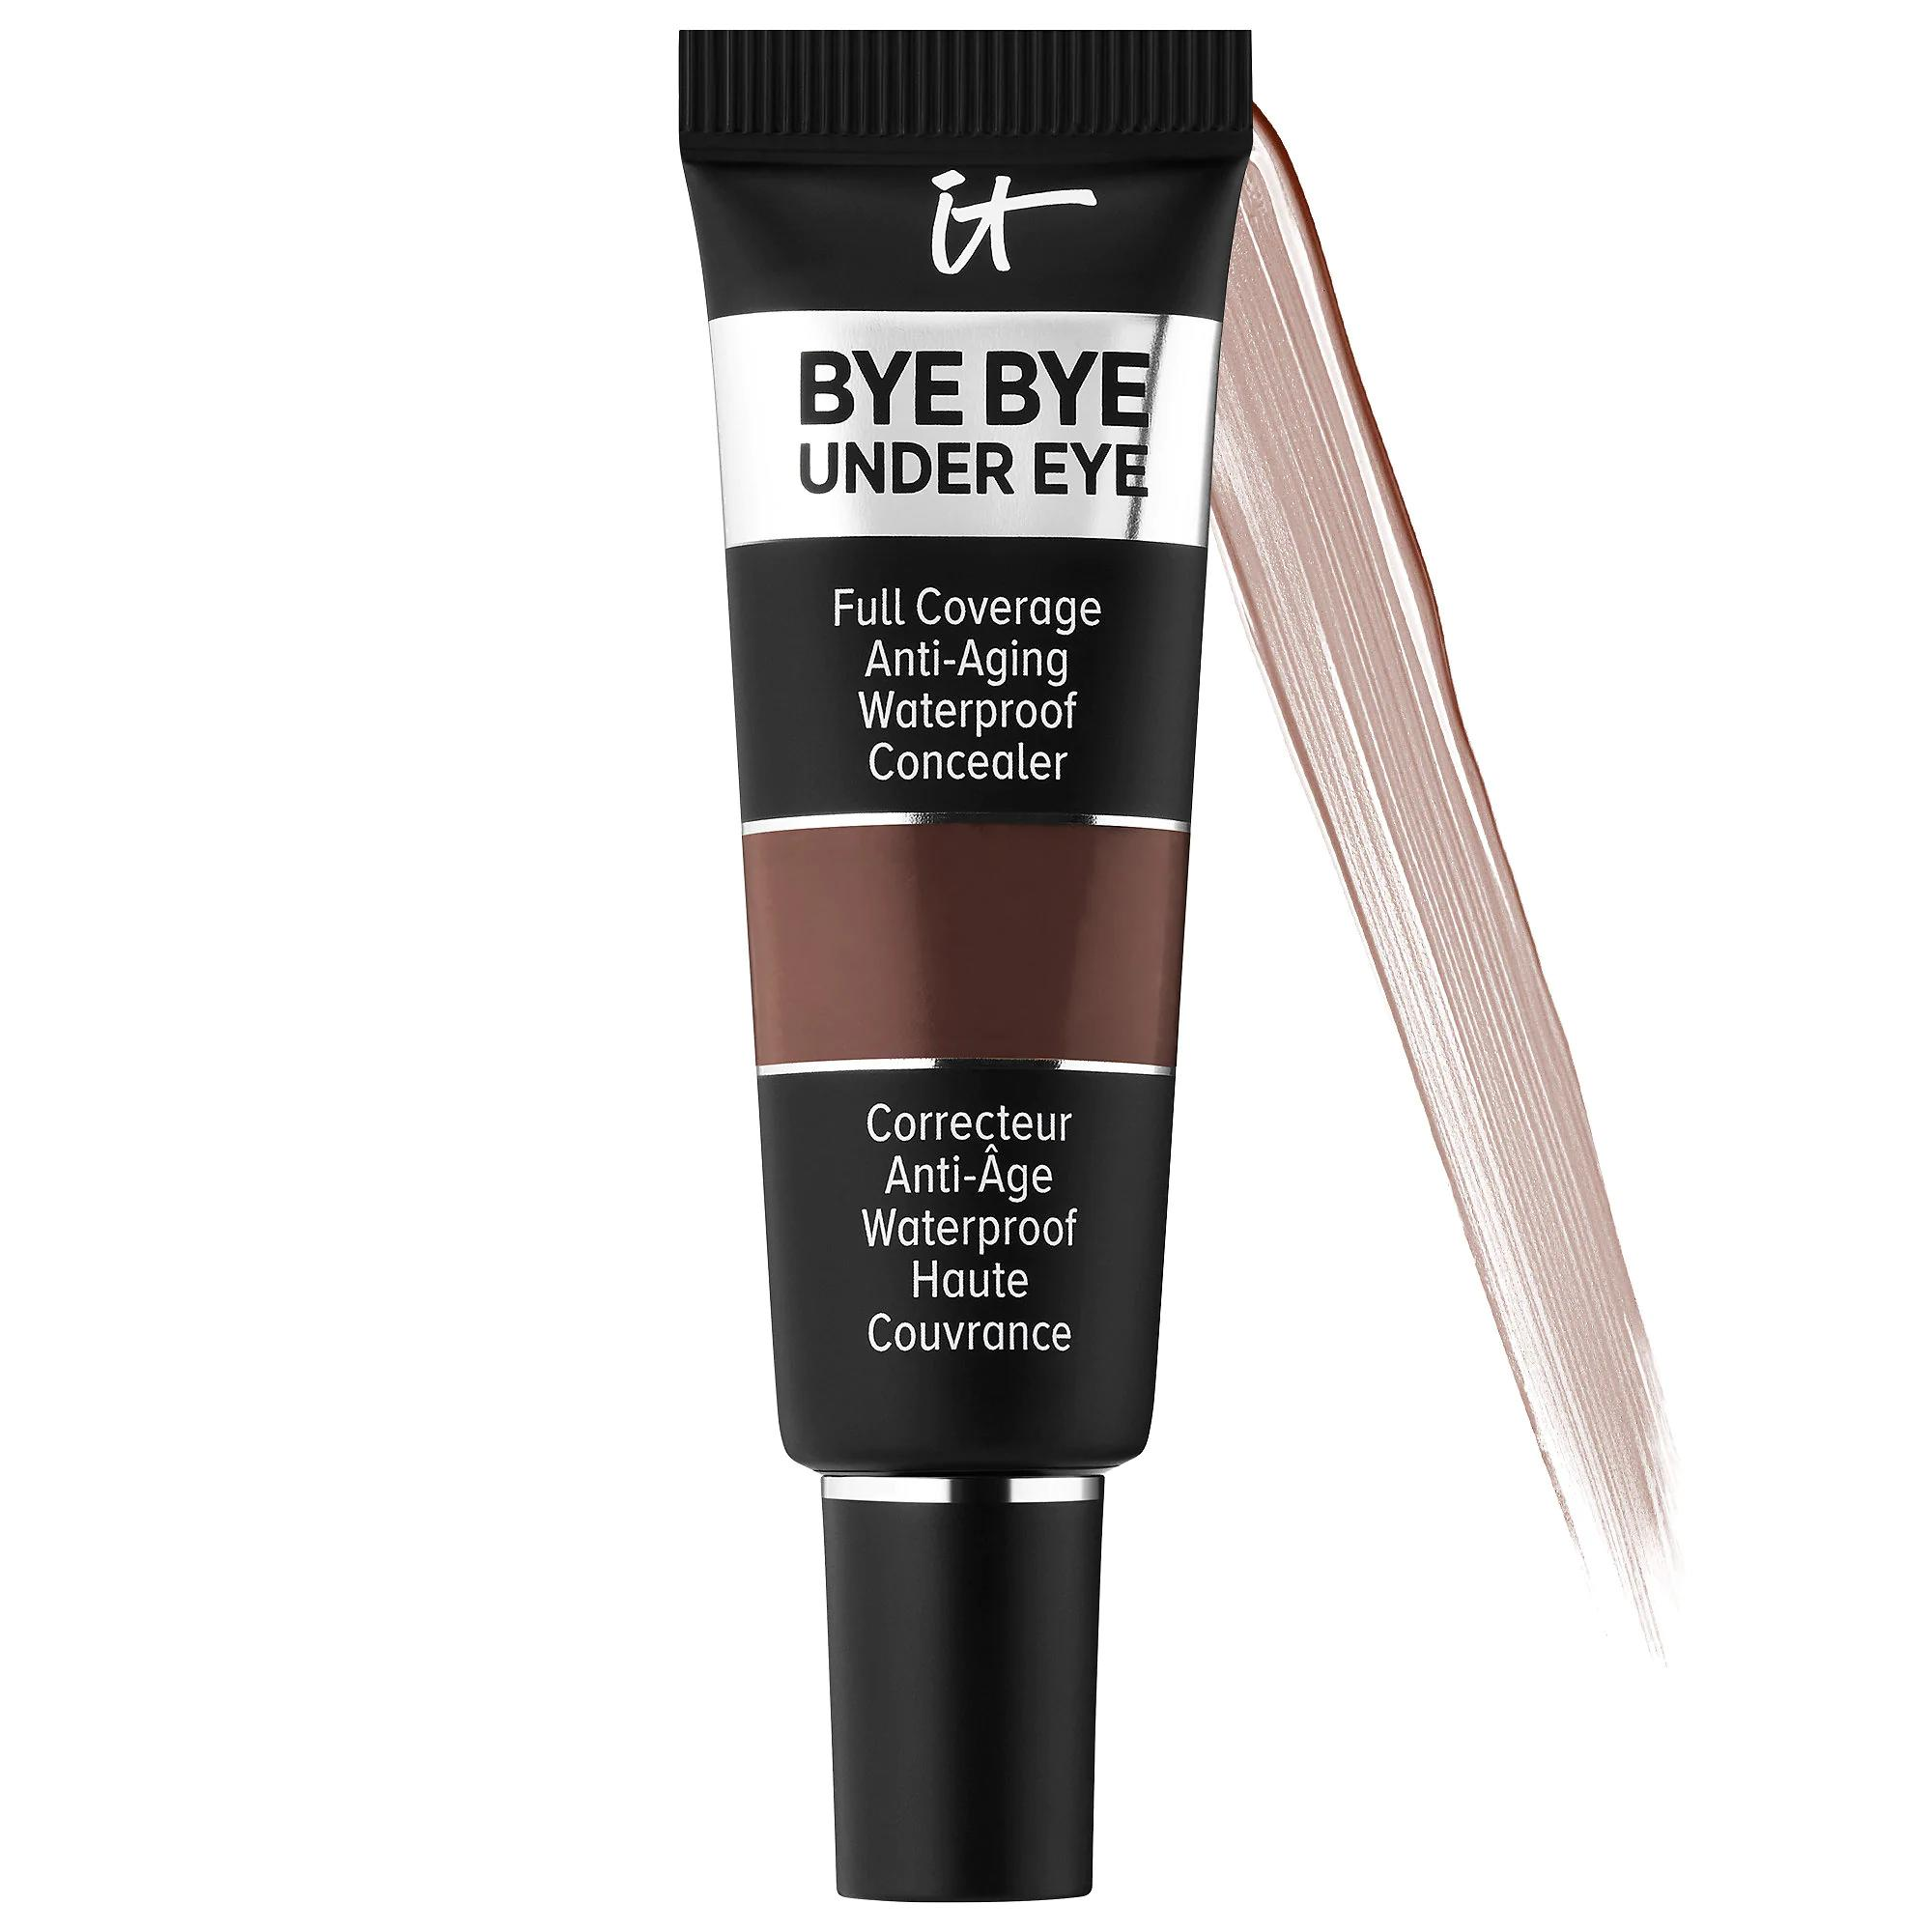 IT Cosmetics Bye Bye Under Eye Full Coverage Concealer Deep Bronze 45.0